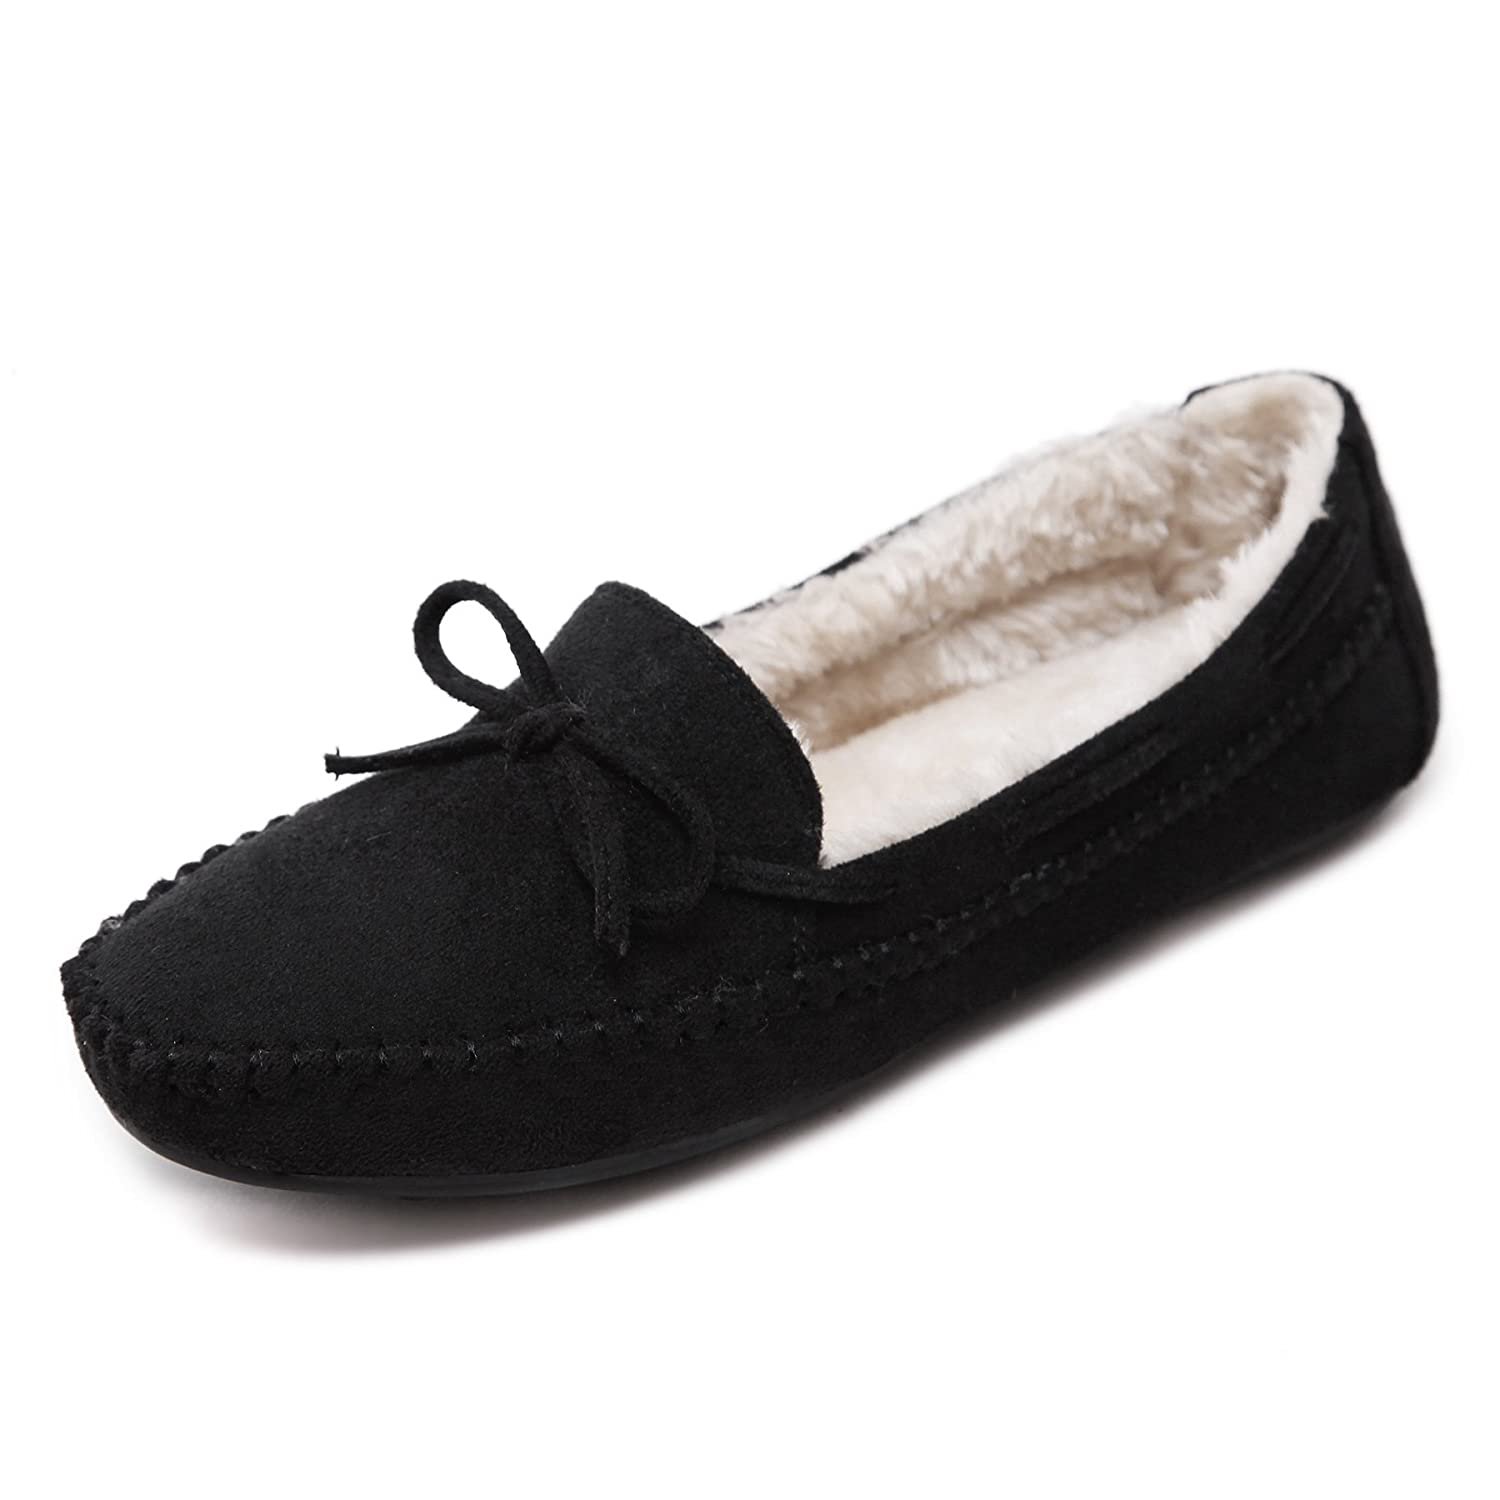 00ef6a9d4a5 BELLOO Women Winter Suede Moccasin Slippers Warm Wool Lining Flat Shoes   Amazon.co.uk  Shoes   Bags